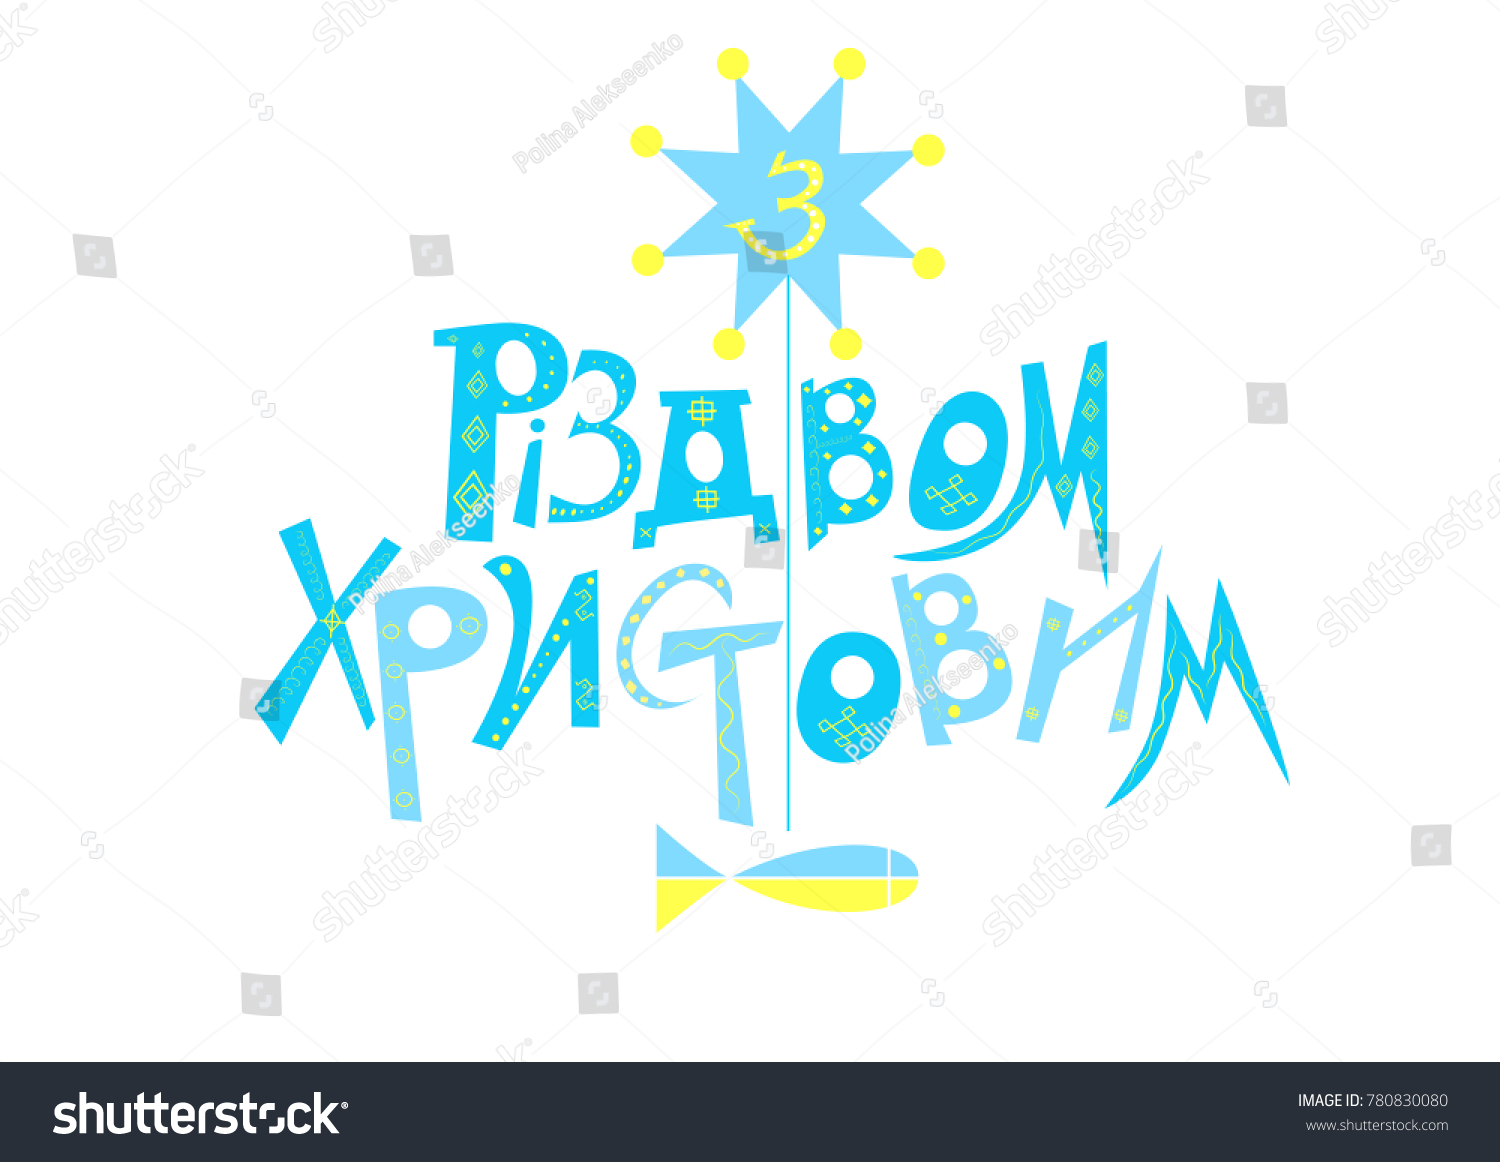 Christian Star Symbol Image collections - meaning of this symbol